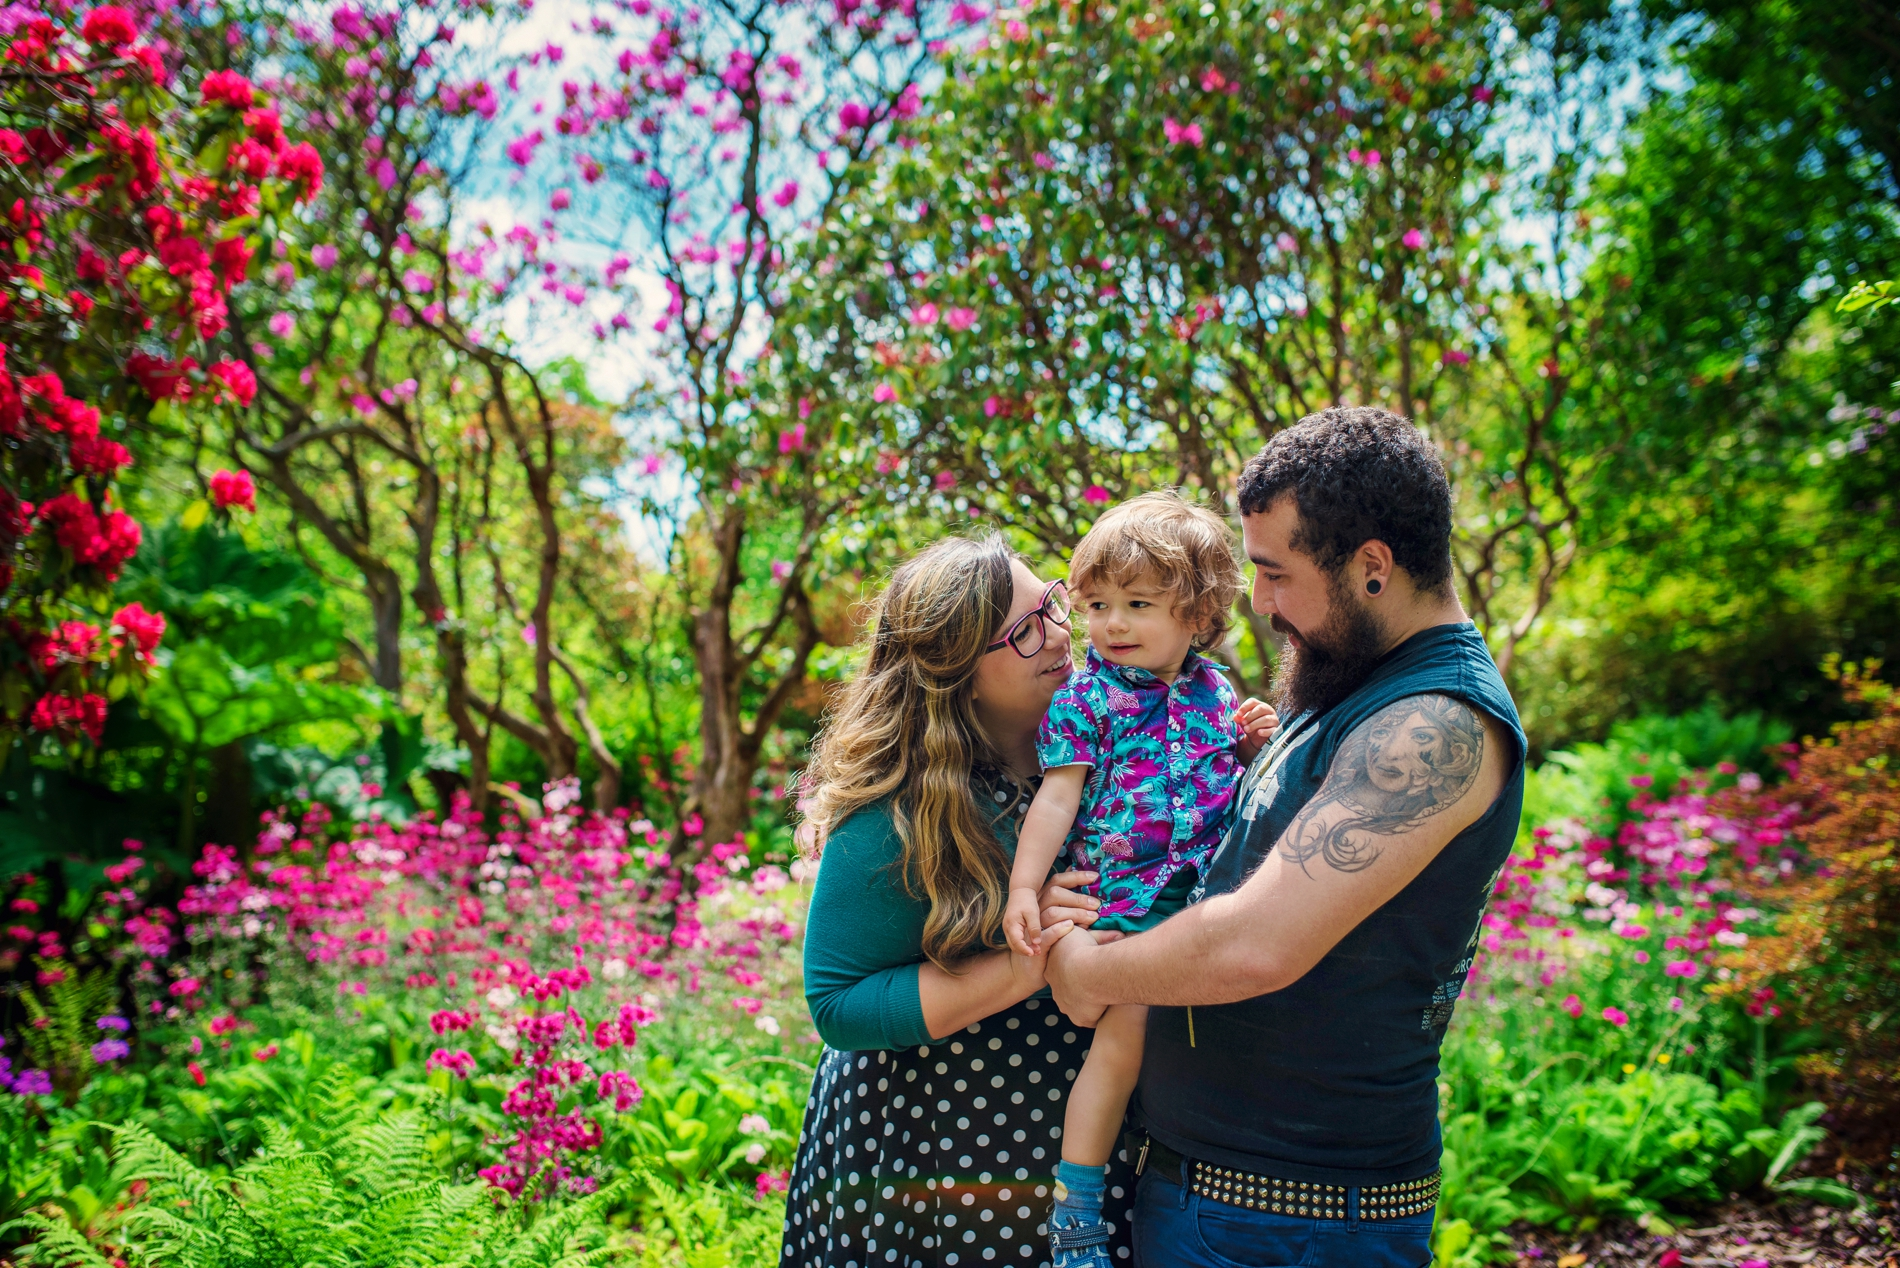 Hampshire-Family-Photograper-Hampshire-Family-Portraits-Photography-by-Vicki_0001